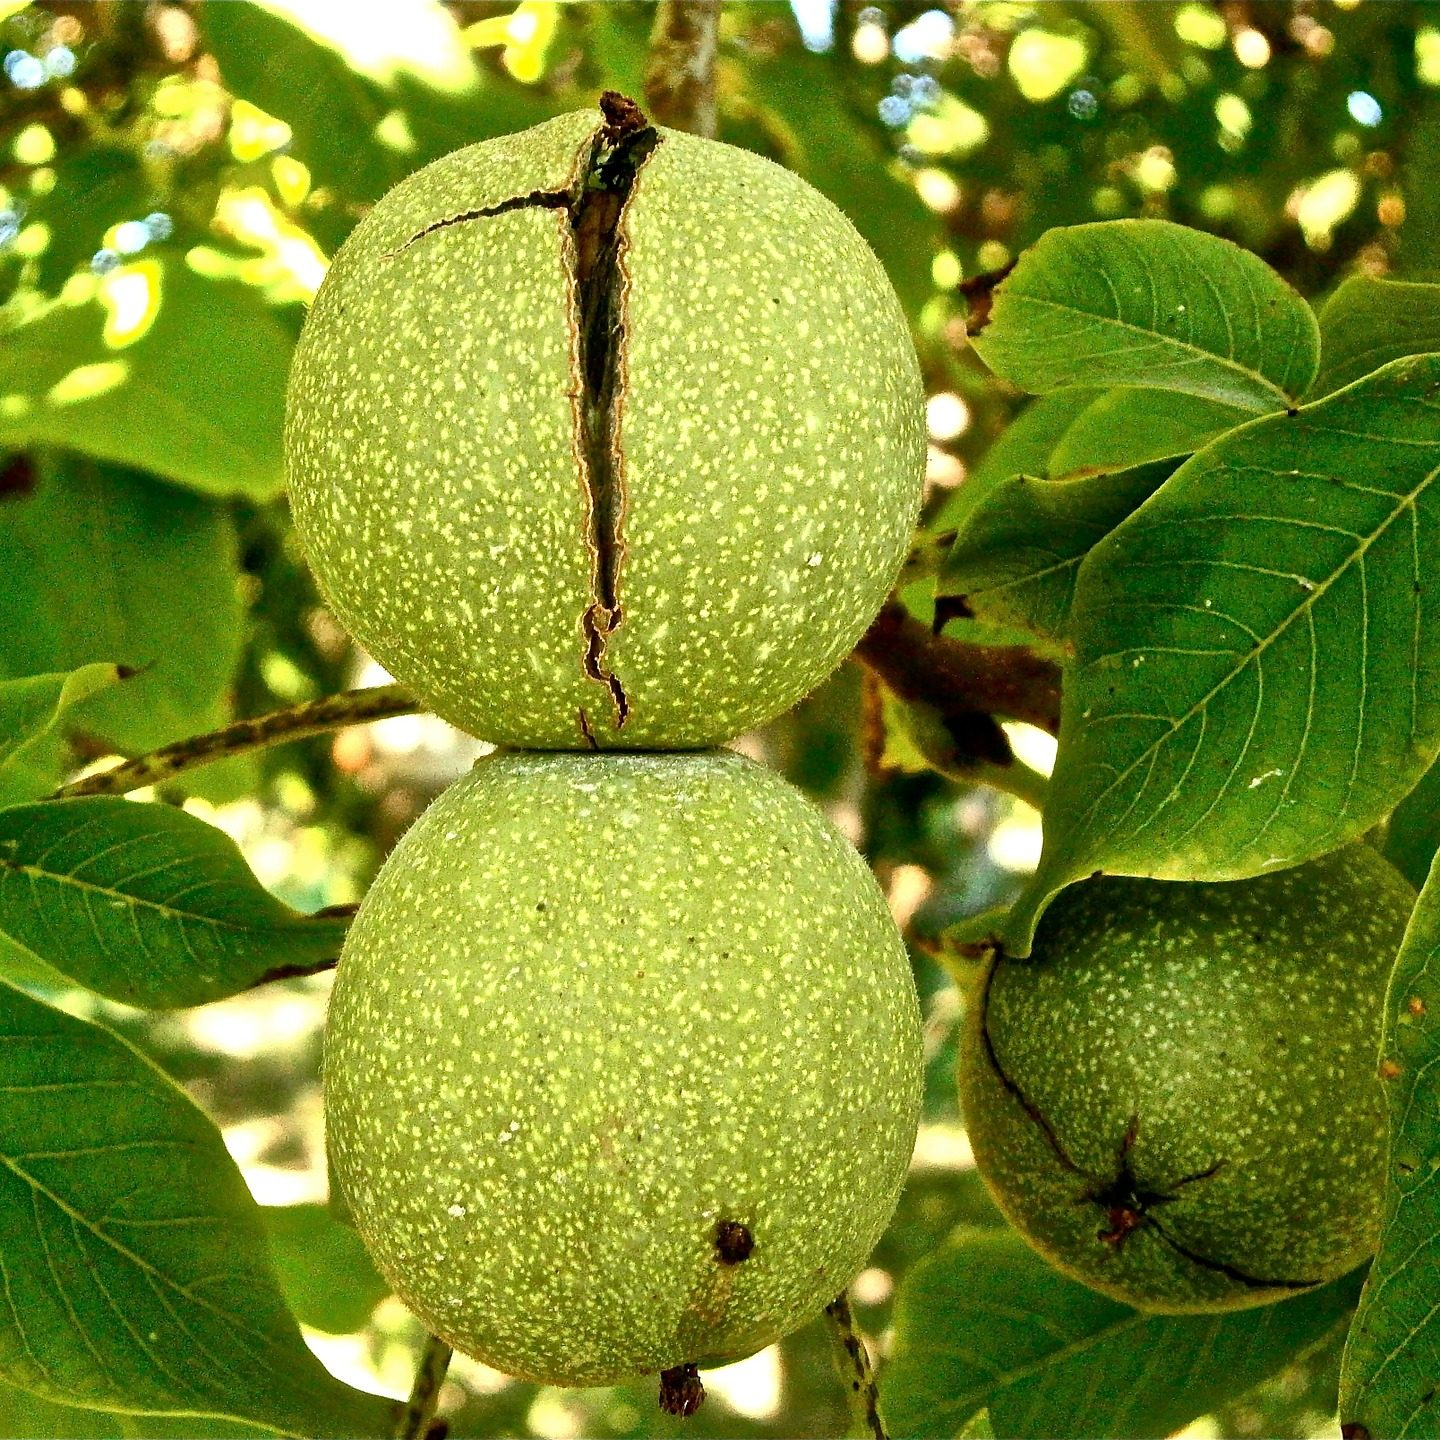 Deciphering the walnut genome